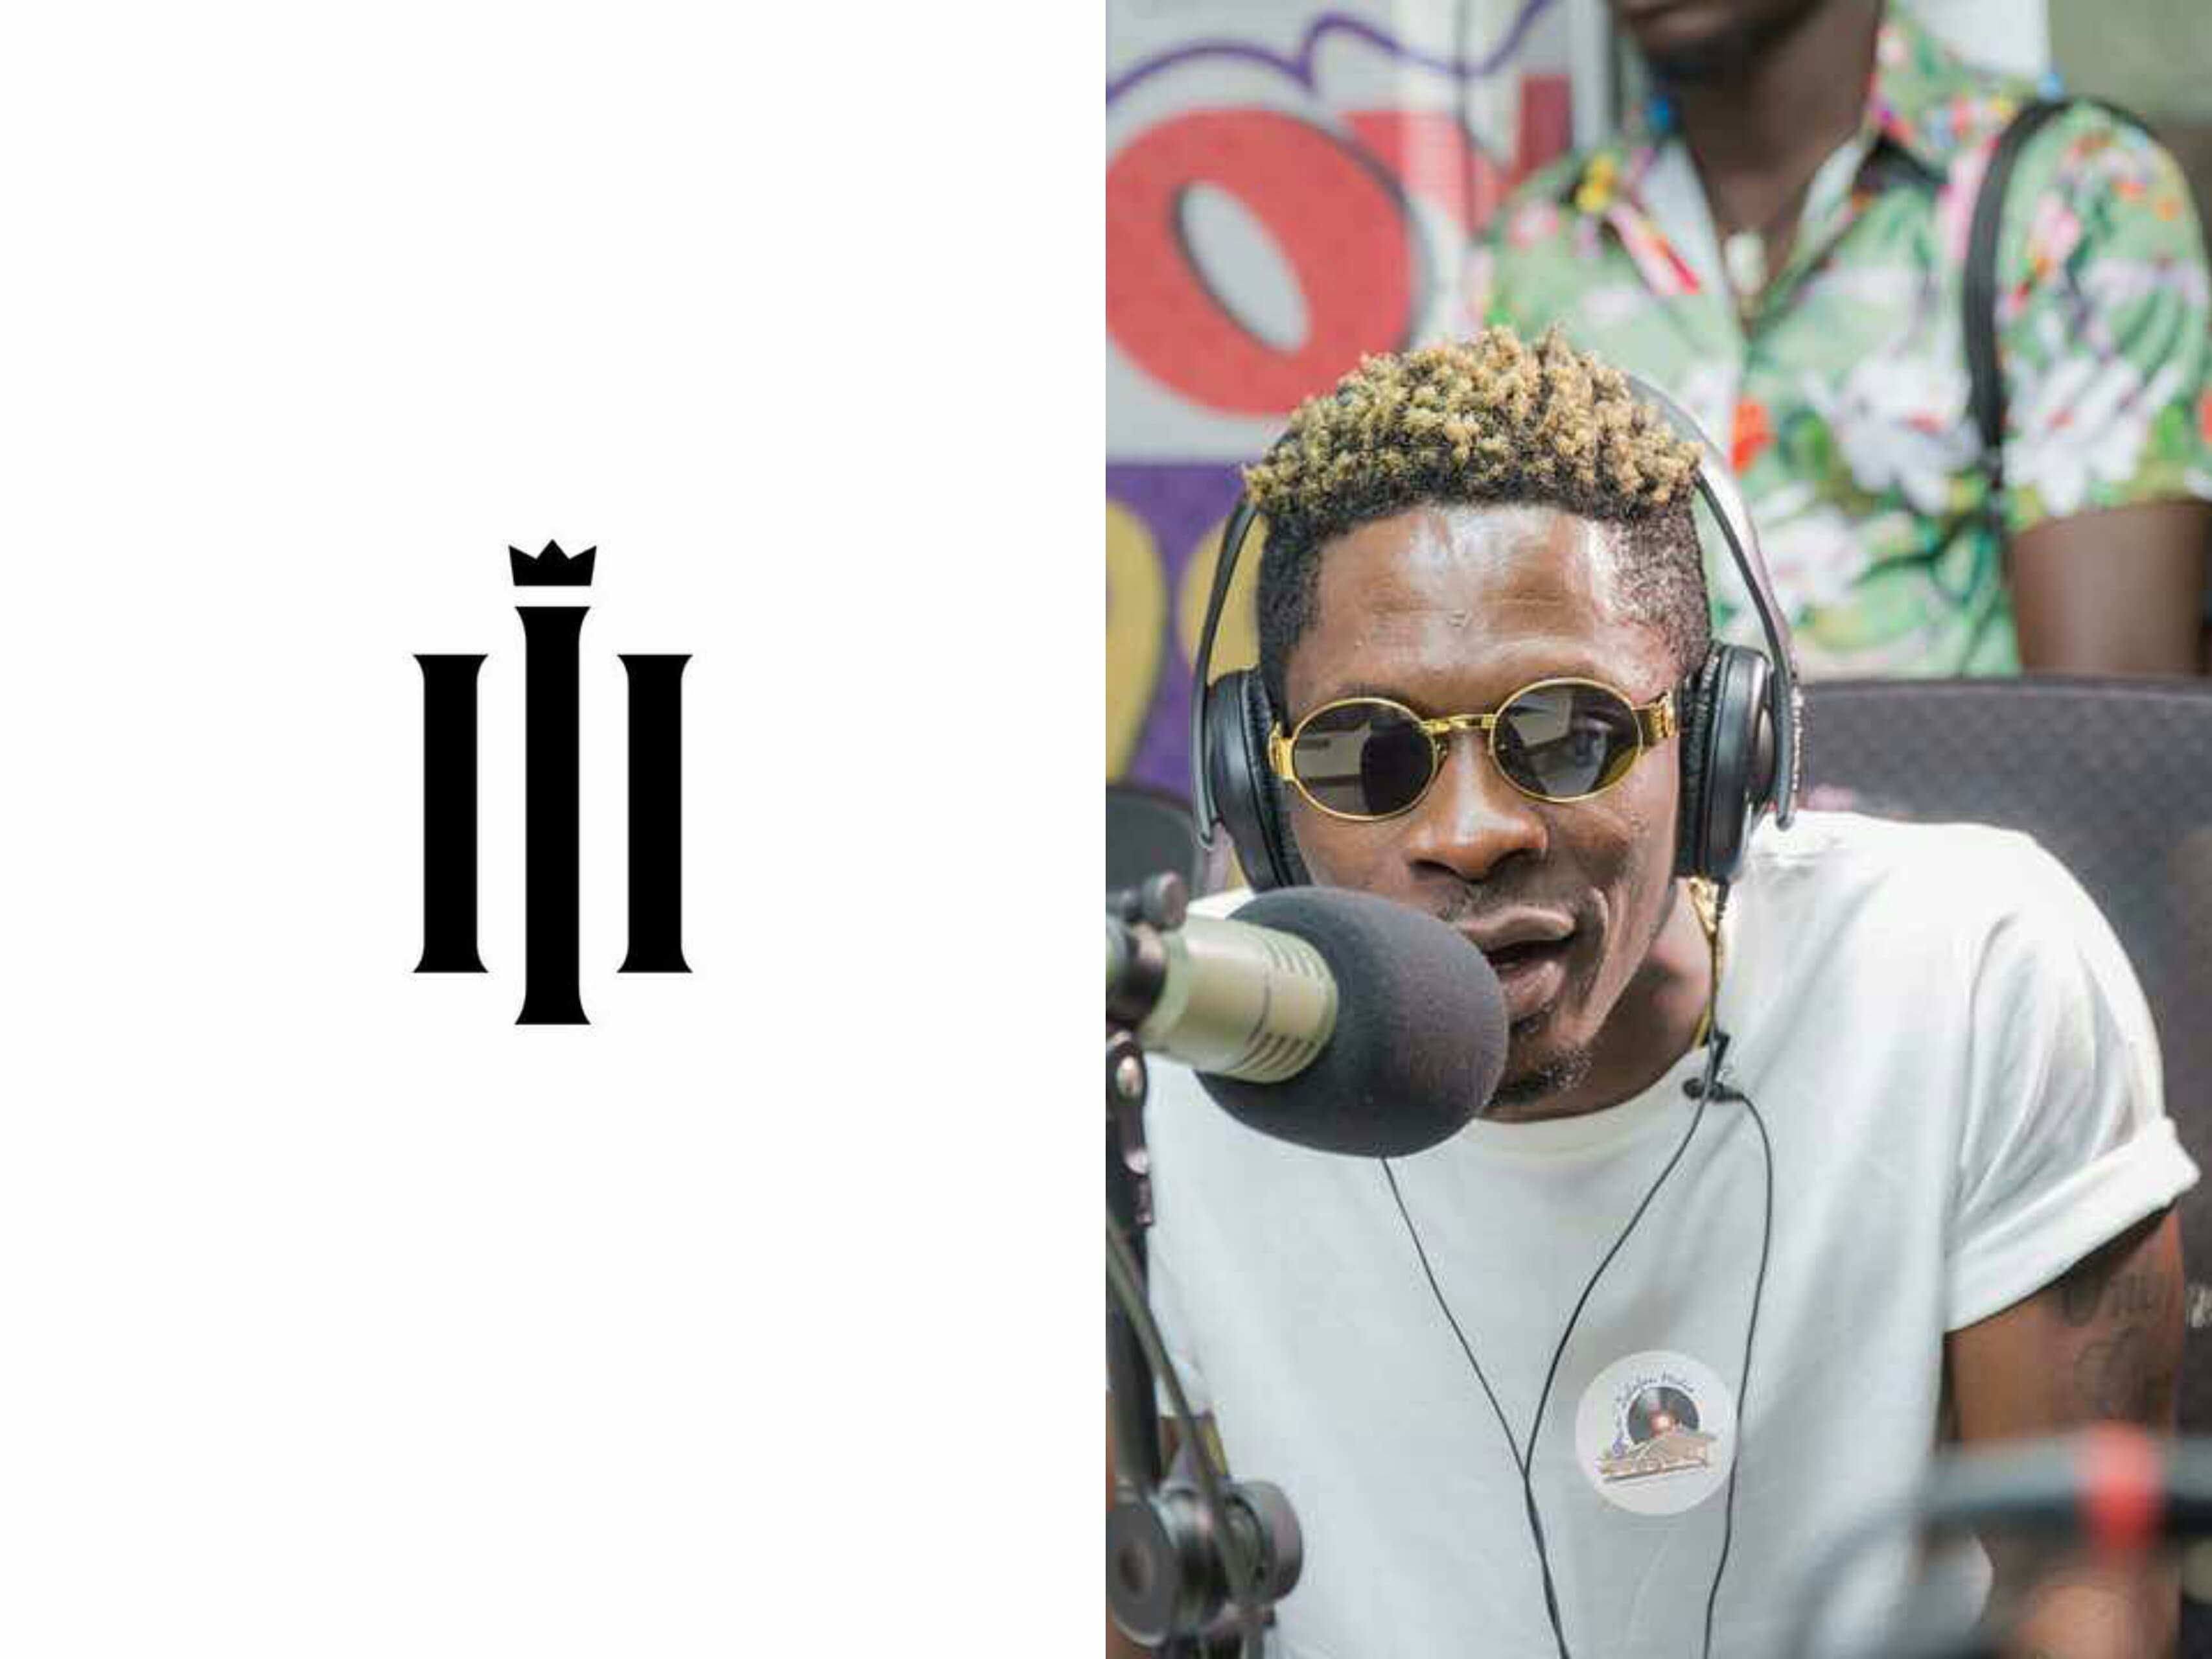 Social media users reactions to Shatta Wale's Reign album launch